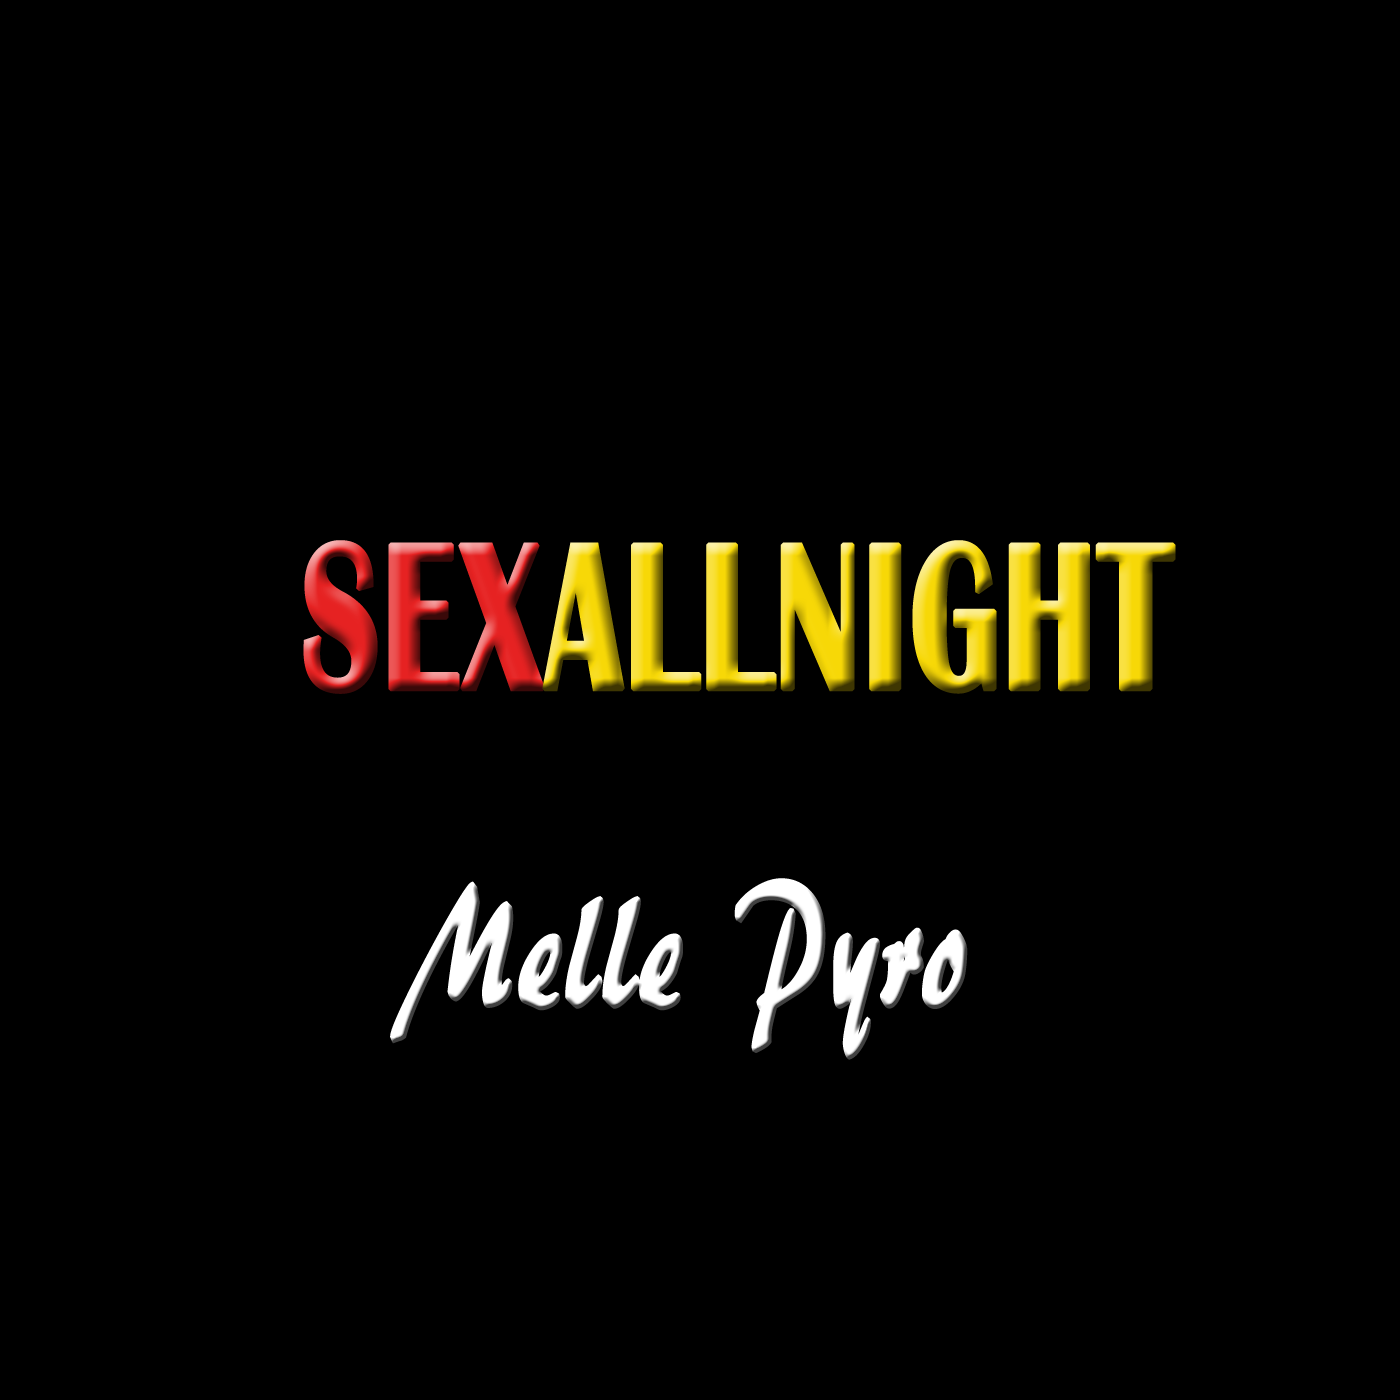 apps on sex Melle